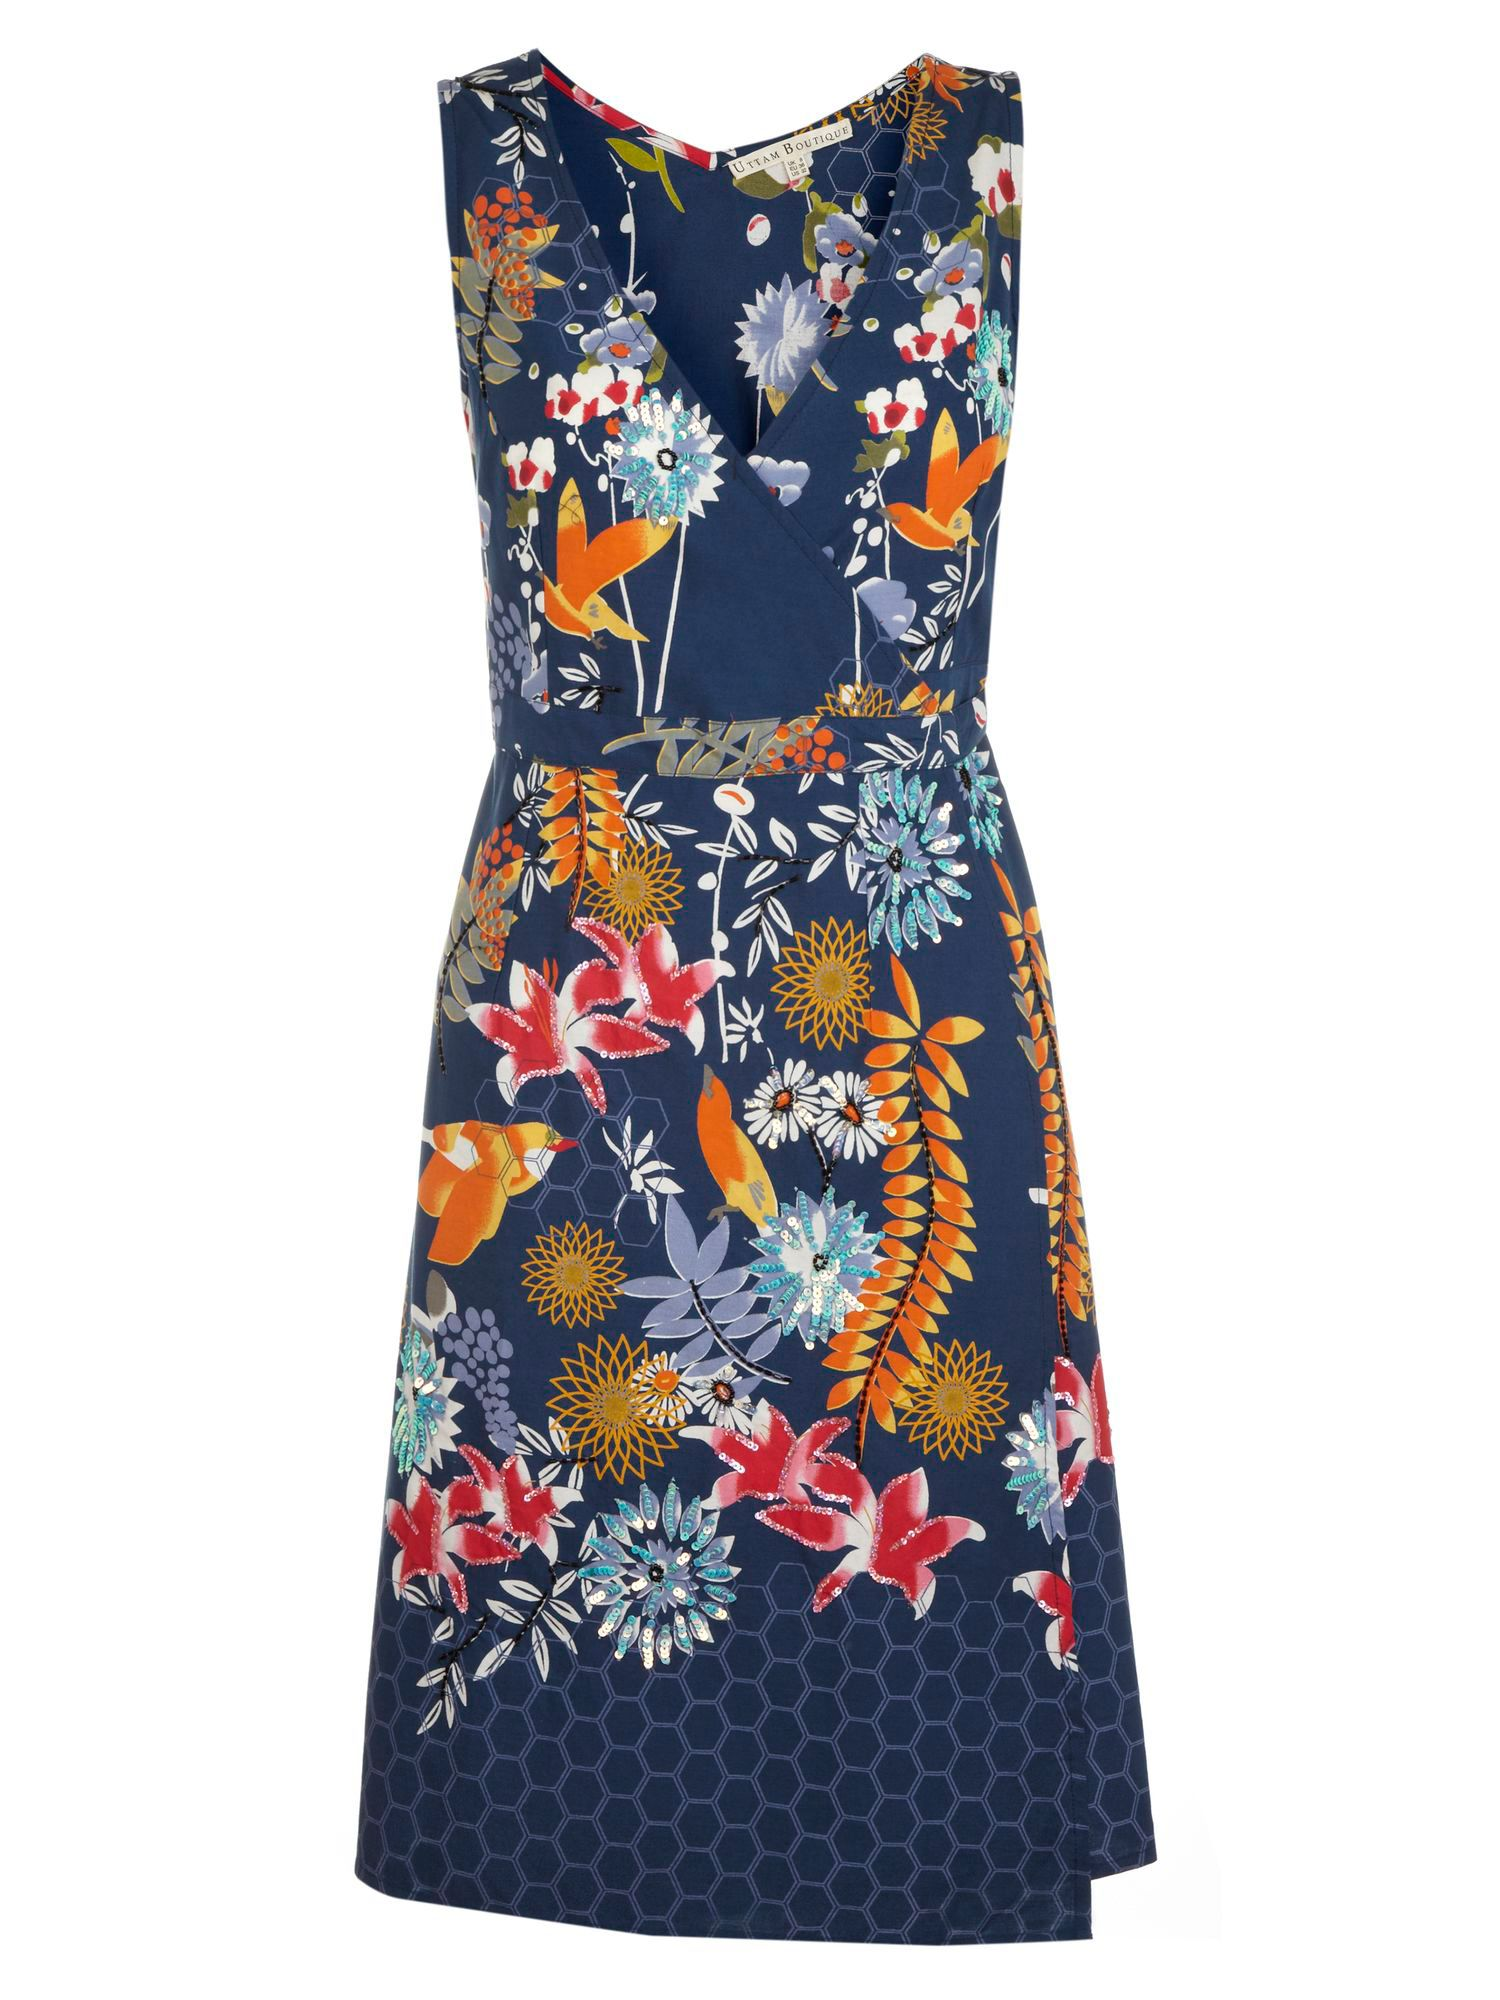 Oriental bird and floral wrap dress